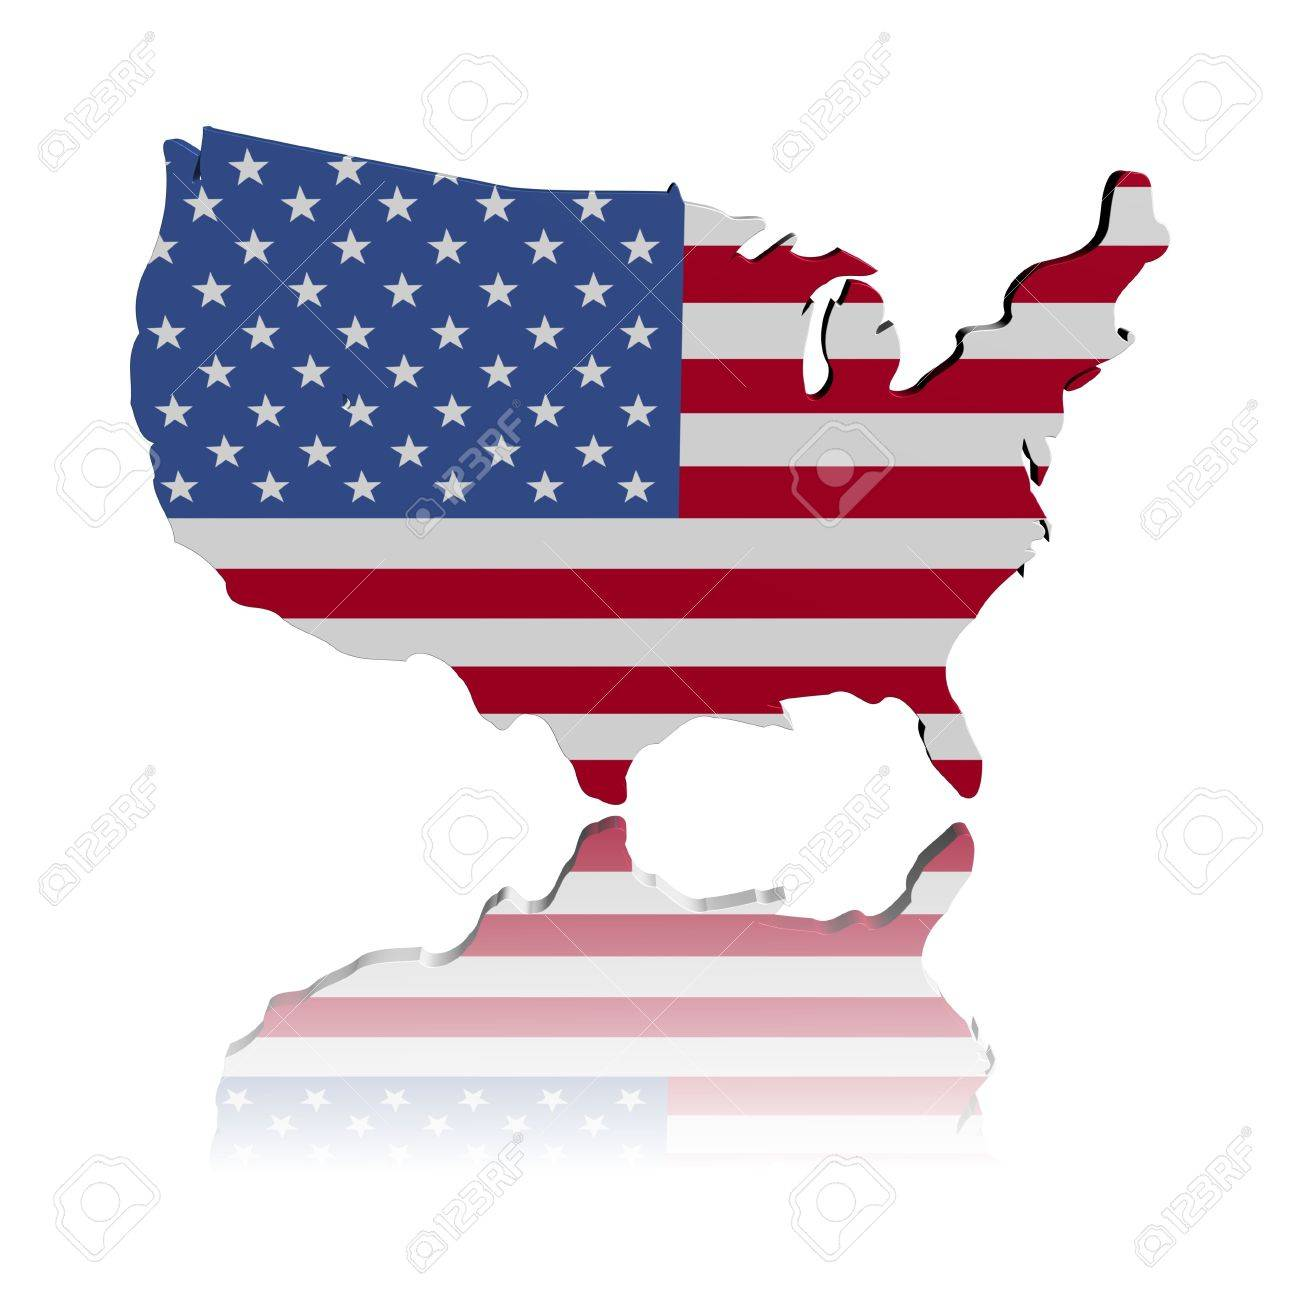 USA Map Flag 3d Render With Reflection Illustration Stock Photo ...